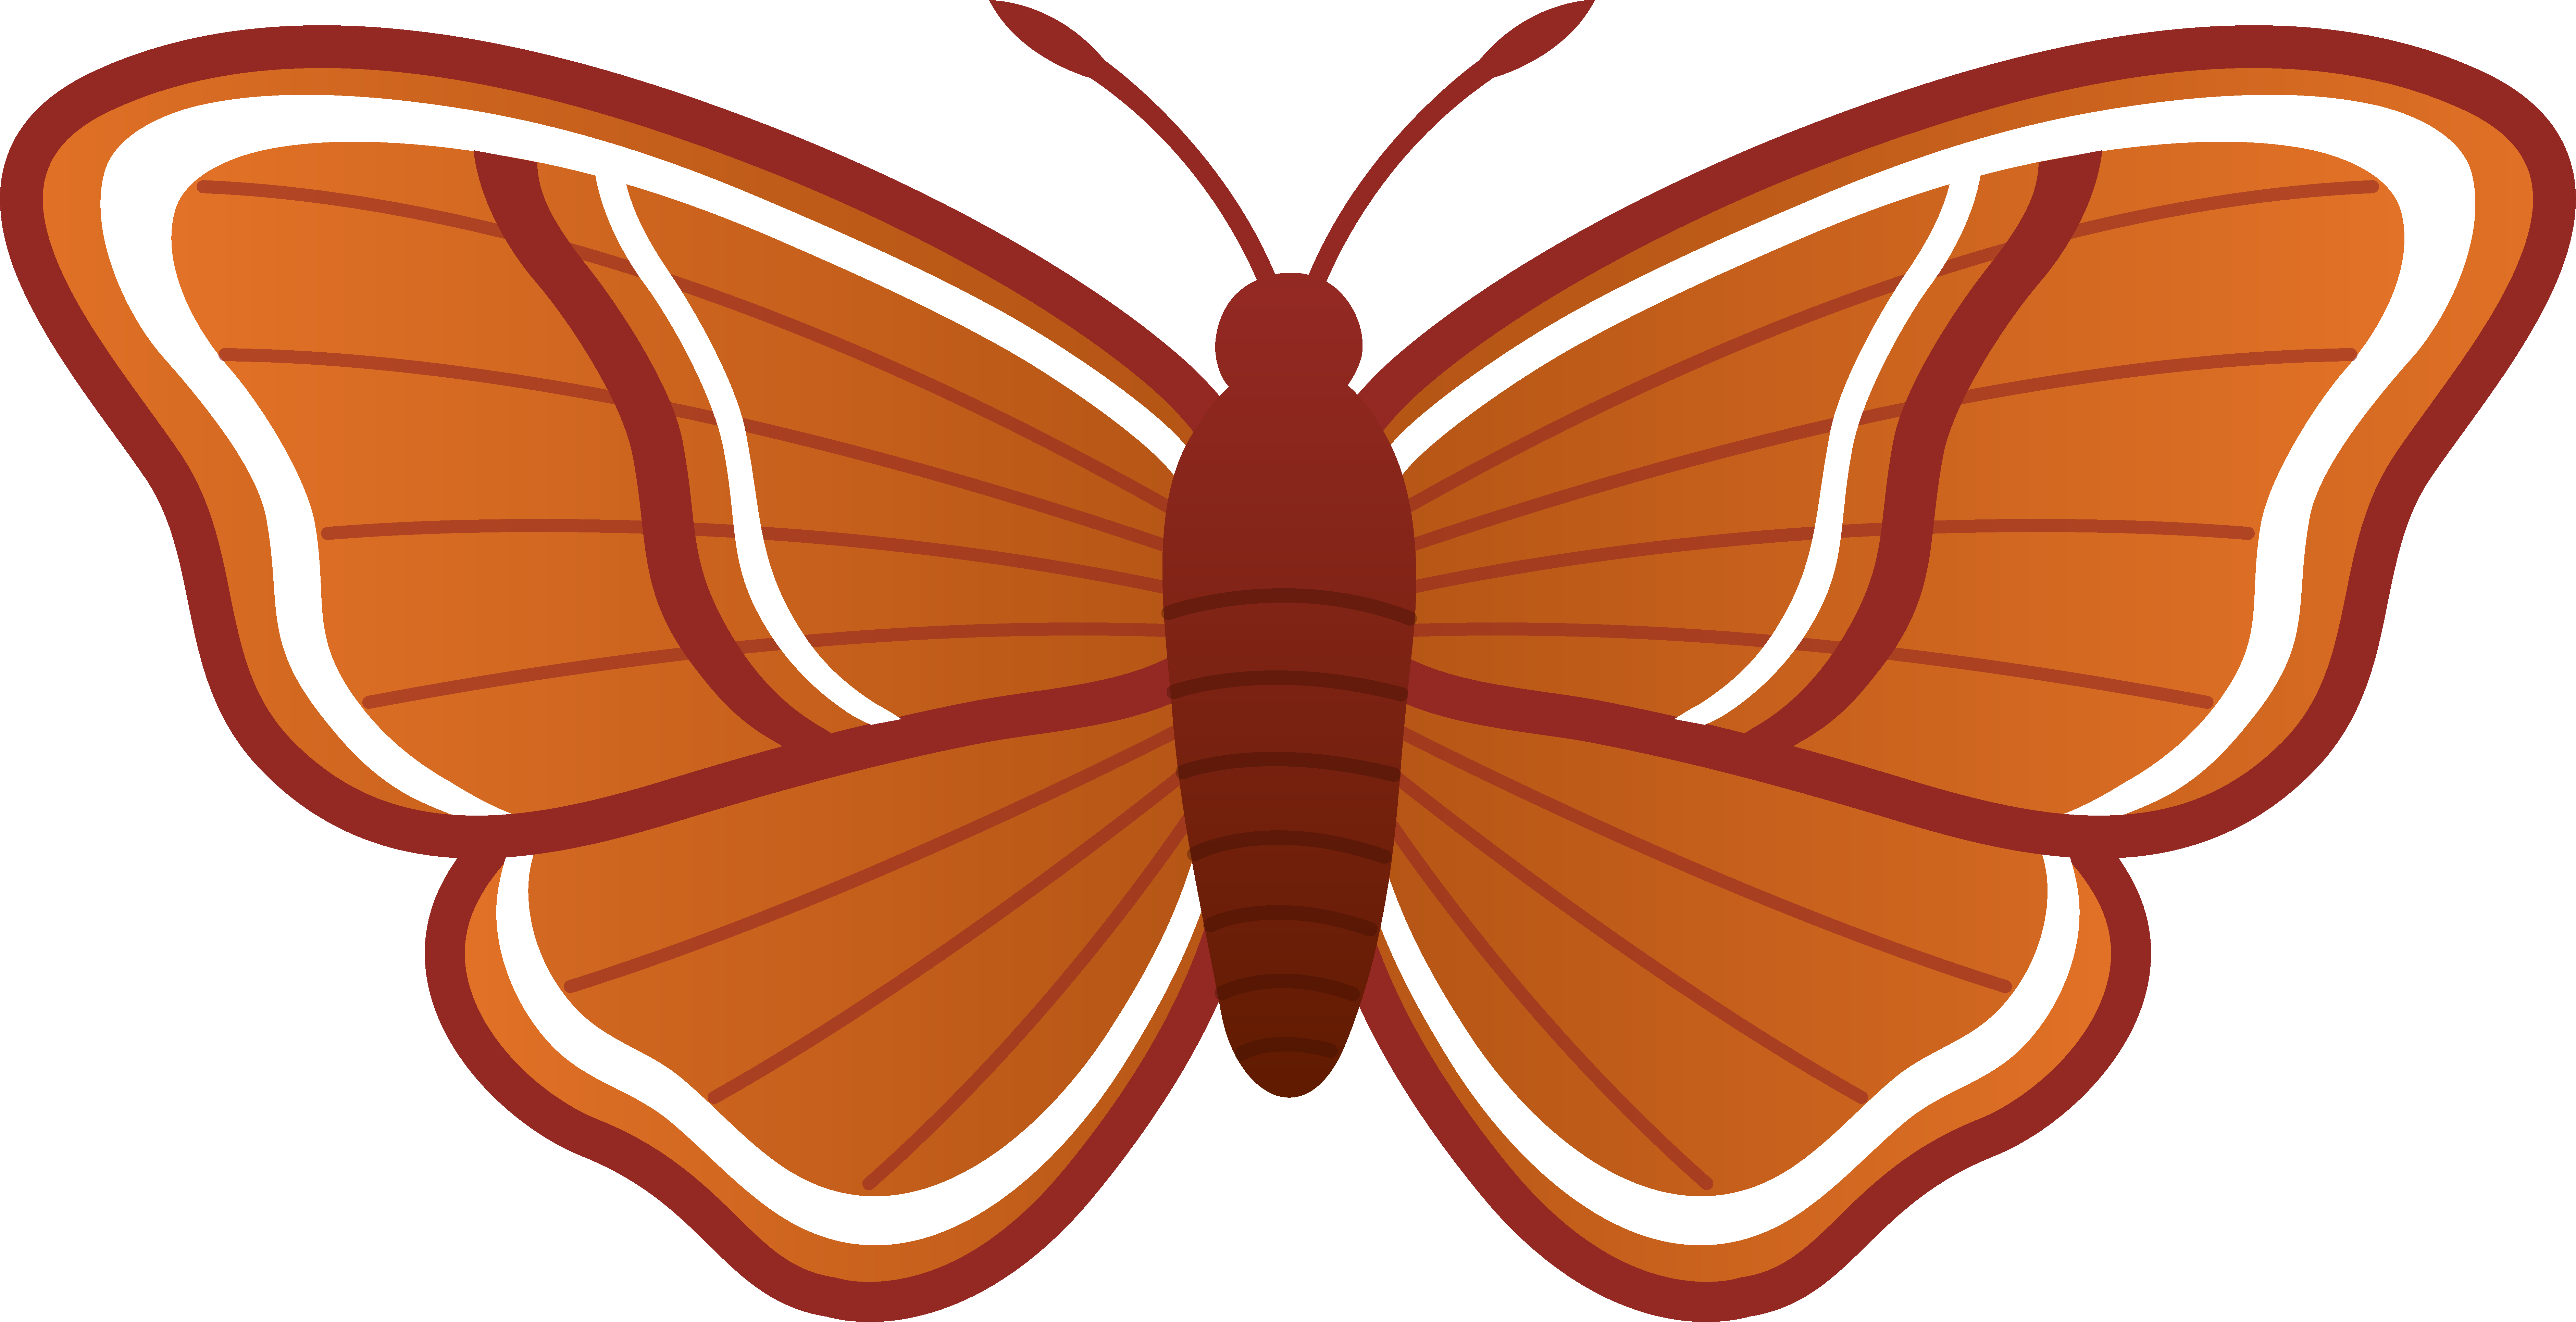 Free Moth Cliparts, Download Free Clip Art, Free Clip Art on.